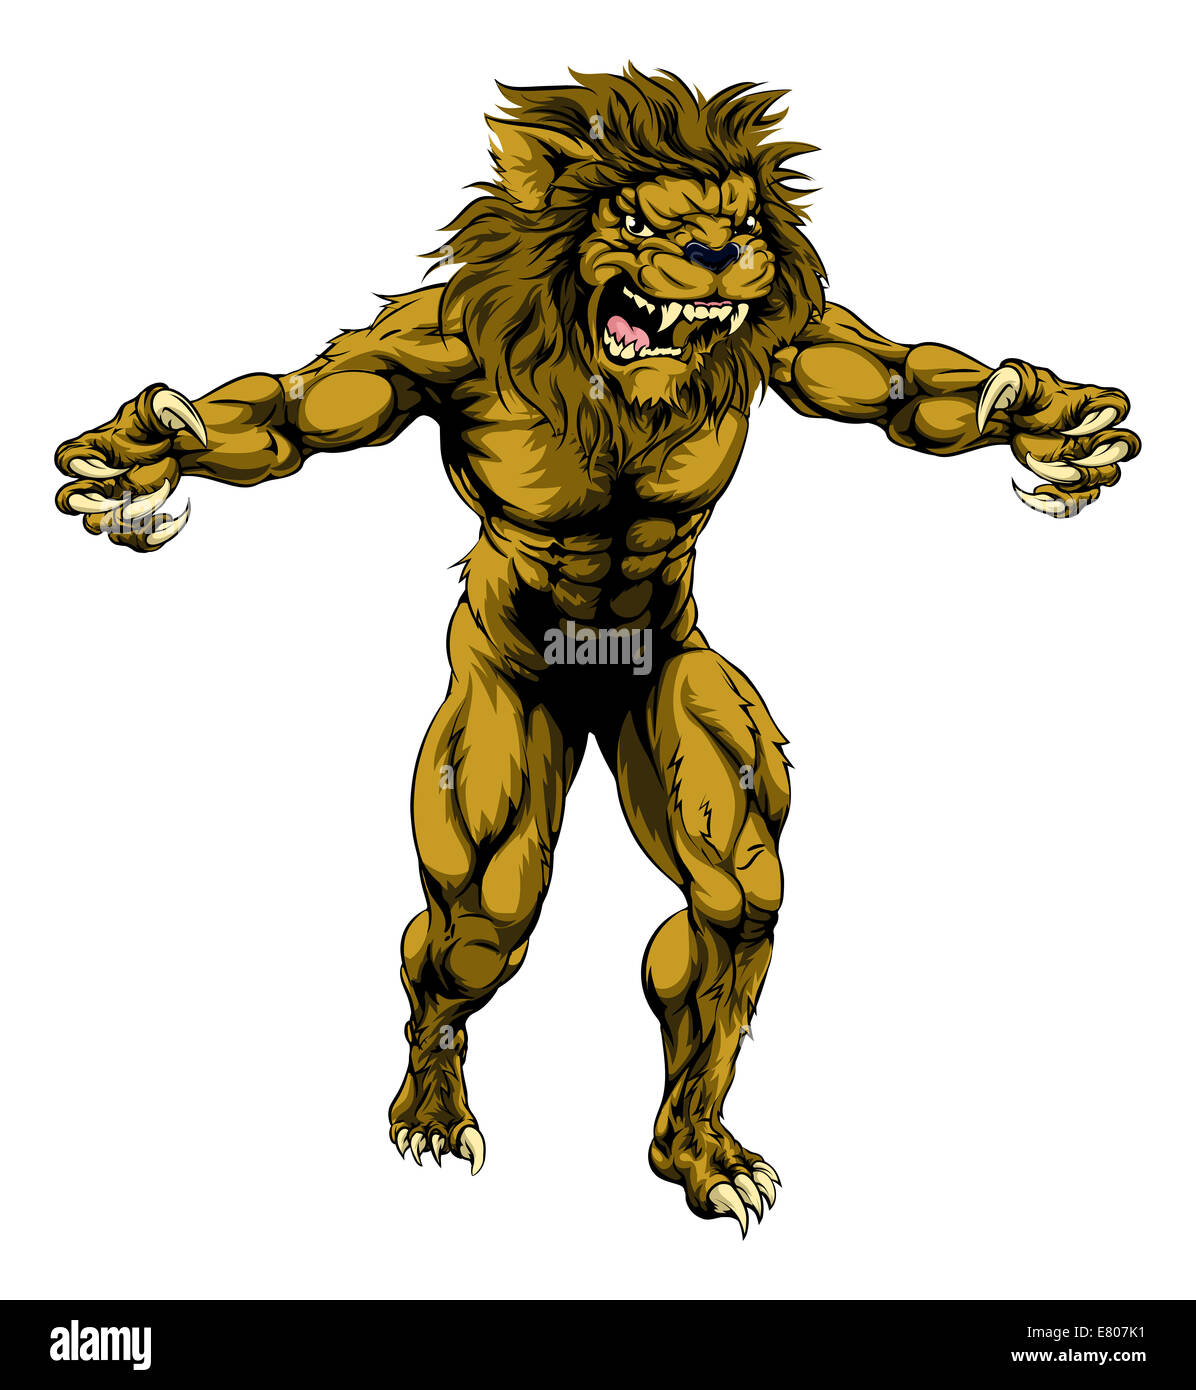 An illustration of a Lion scary sports mascot with claws out - Stock Image